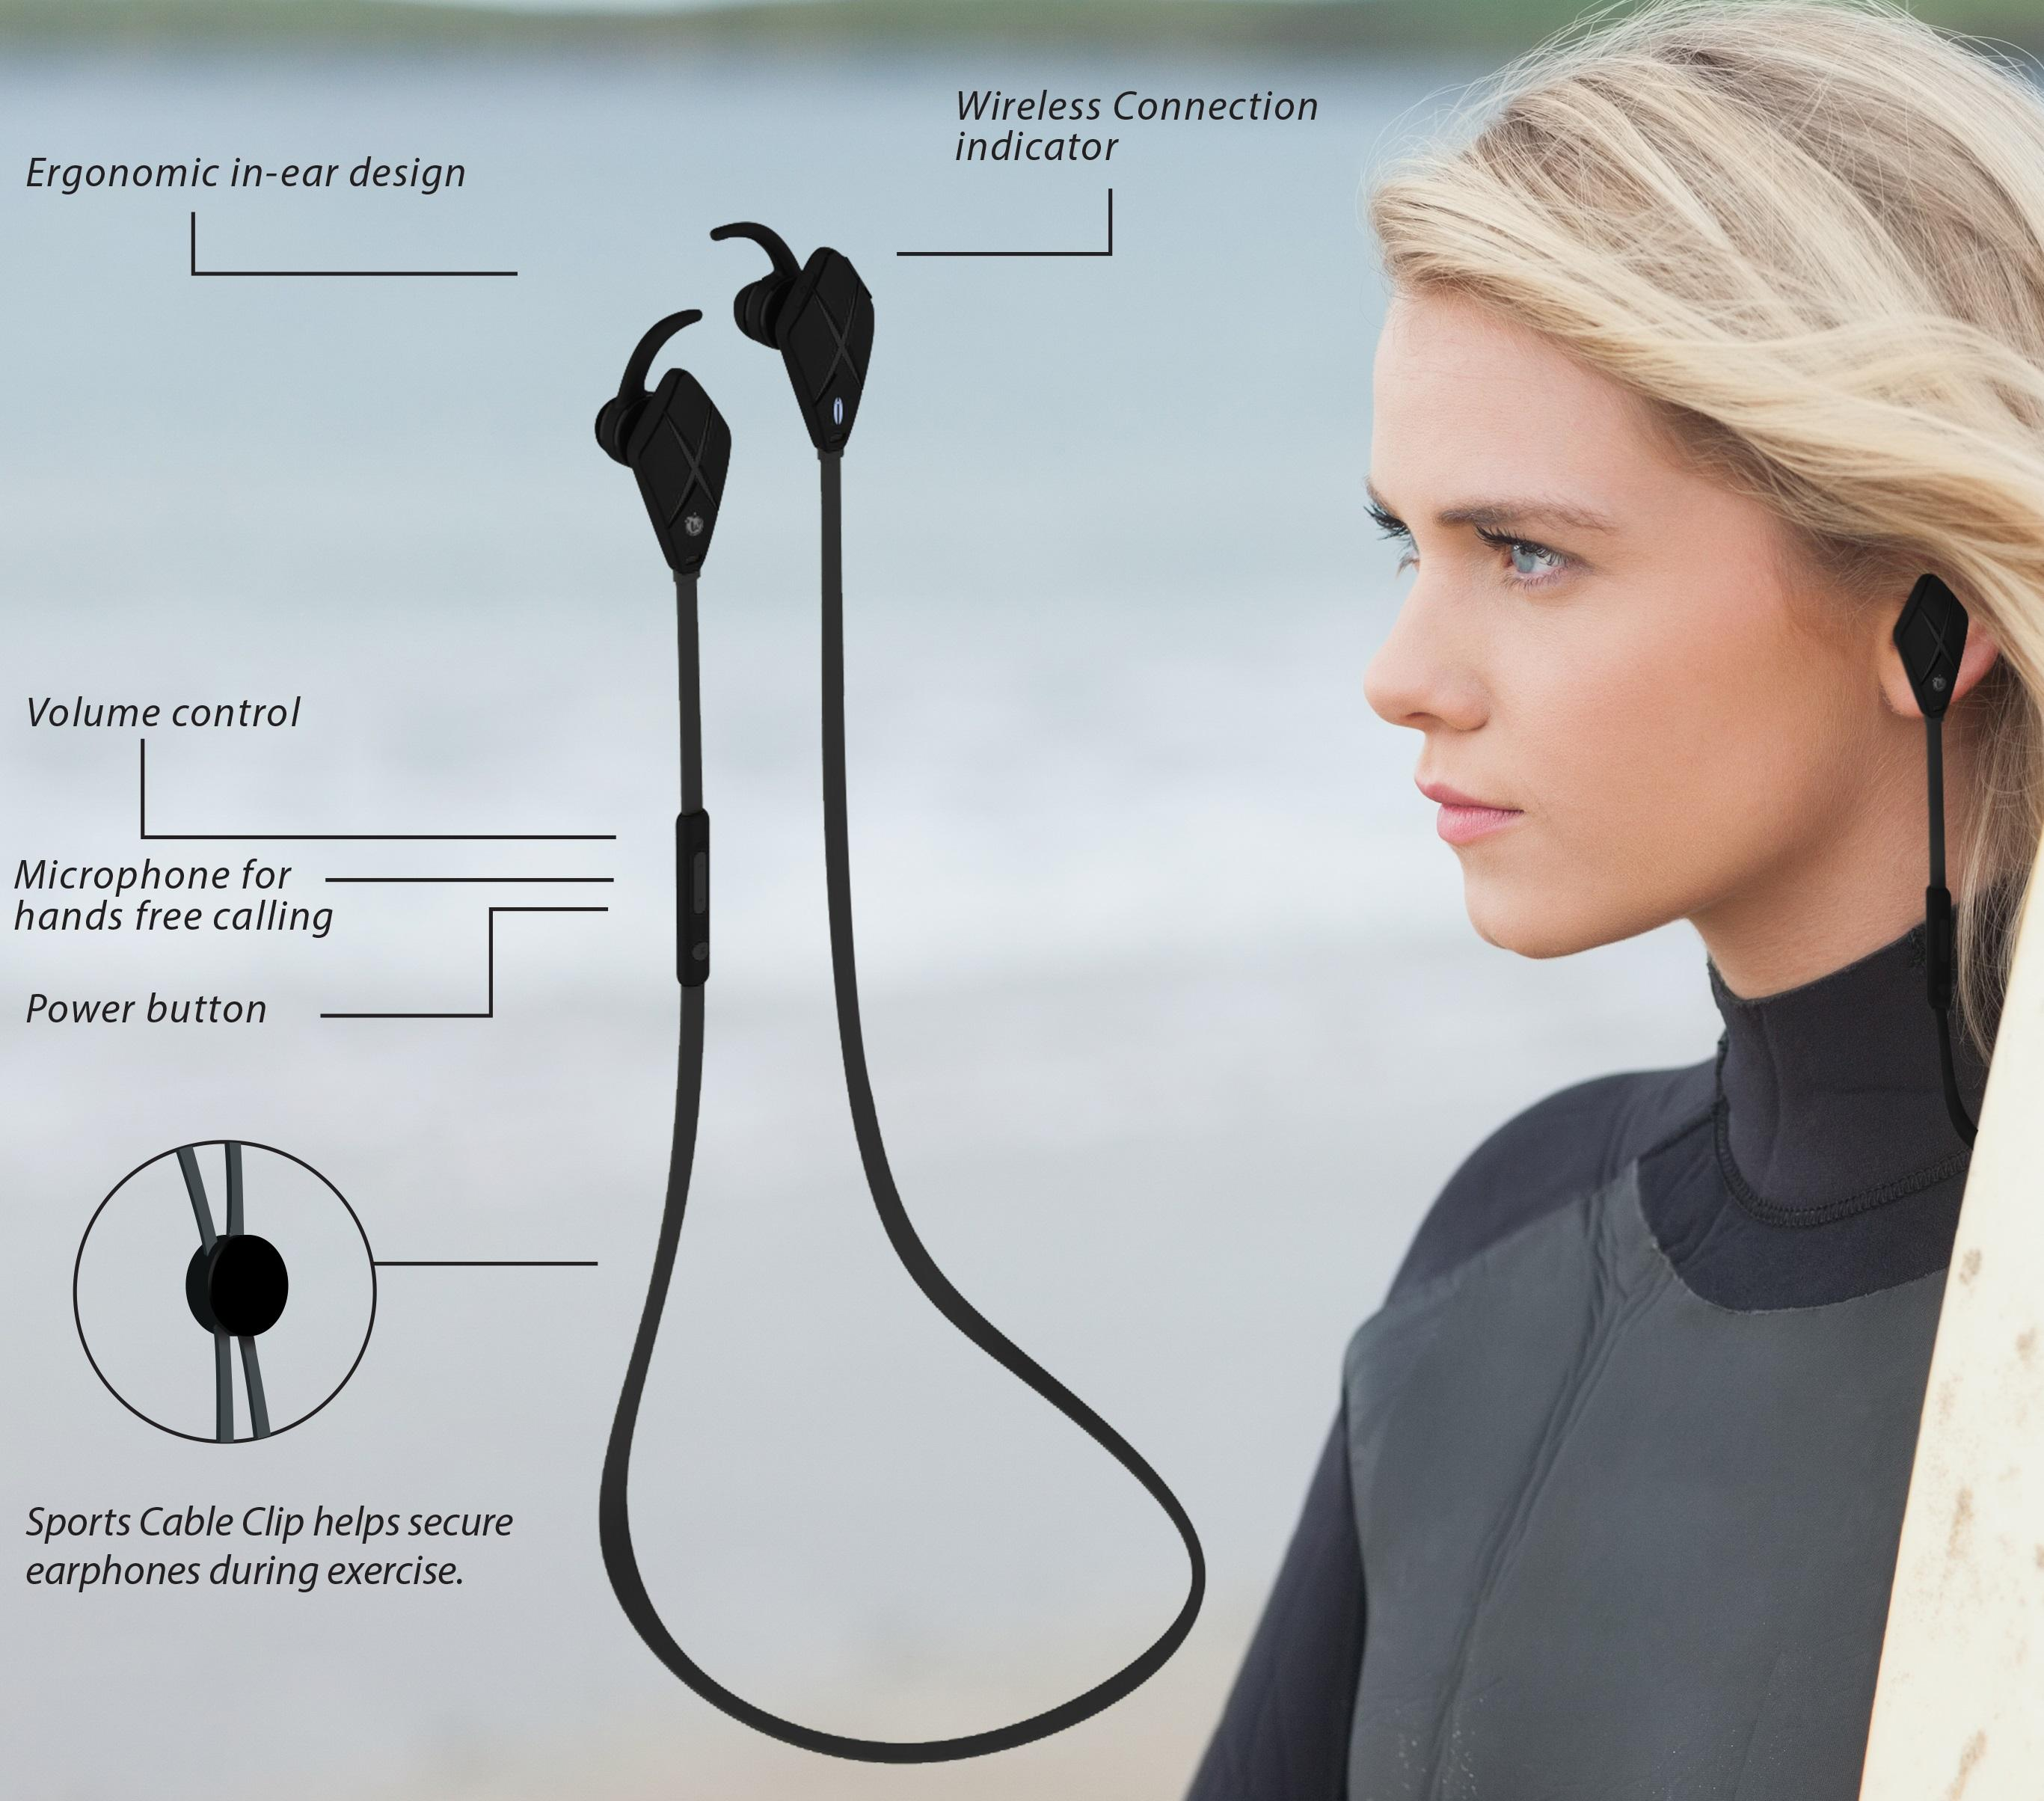 Visiontek Aerial Bluetooth Wireless In Ear Headphones Headphone With Volume Control Wiring Diagram Get Free Image About Earphones For Your Active Lifestyle